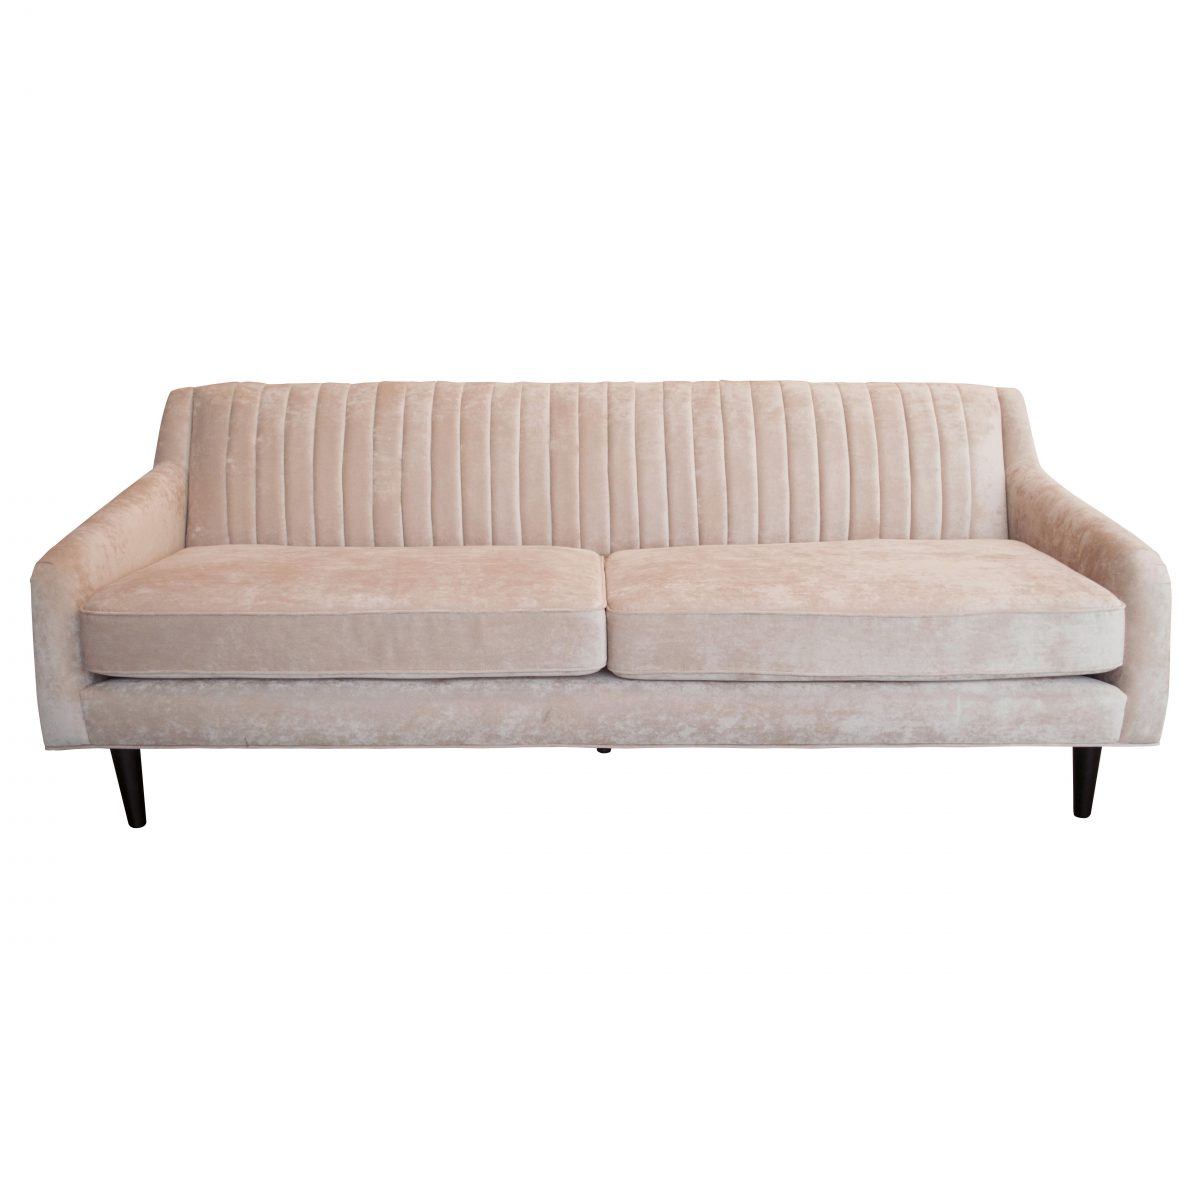 Sofa X Long Betty Blush Sofa